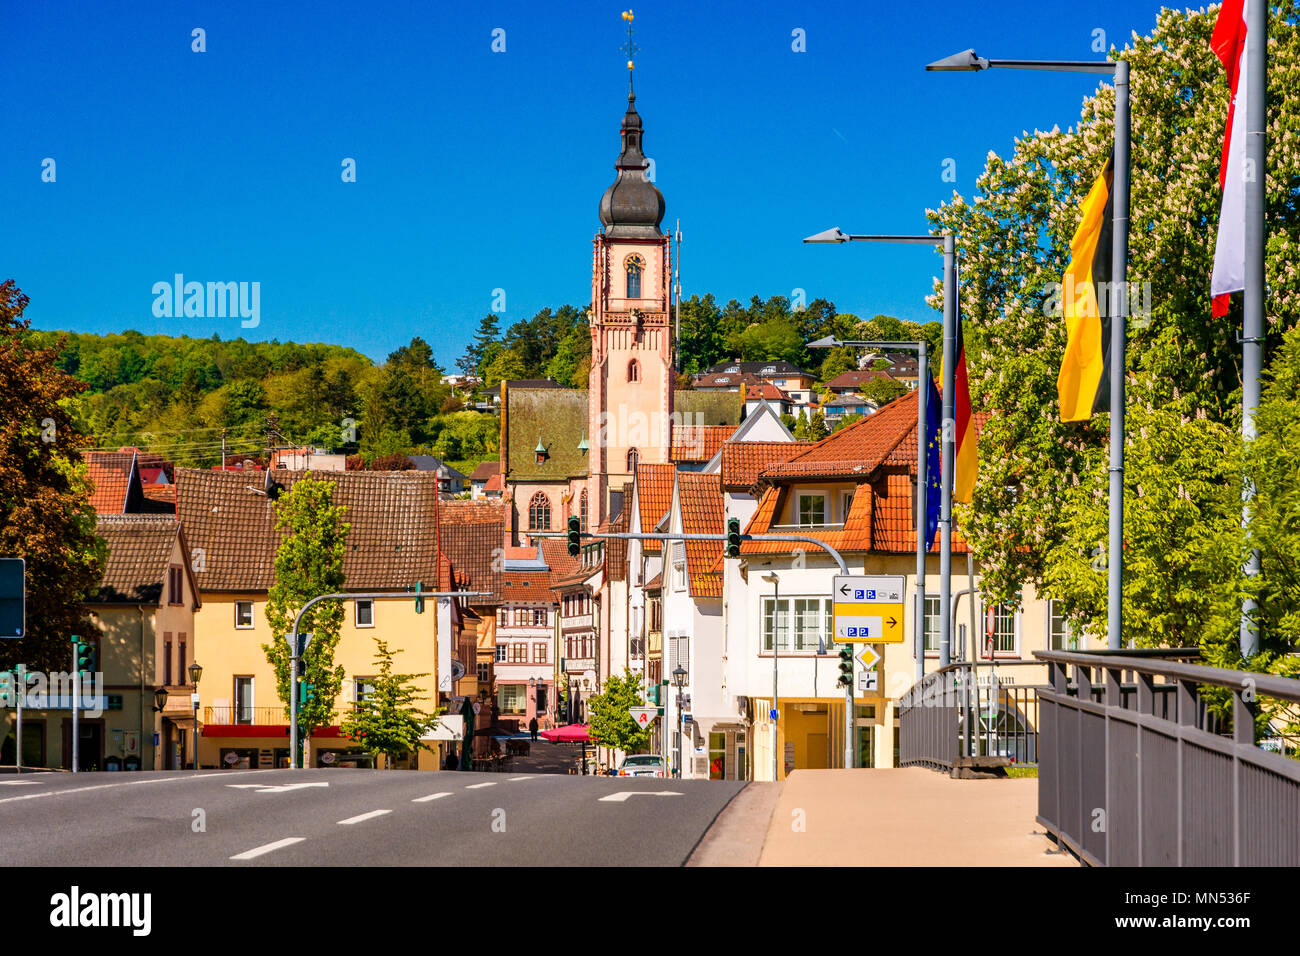 Beautiful scenic view of the old town in Tauberbischofsheim - part of the Romantic Road, Bavaria, Germany - Stock Image